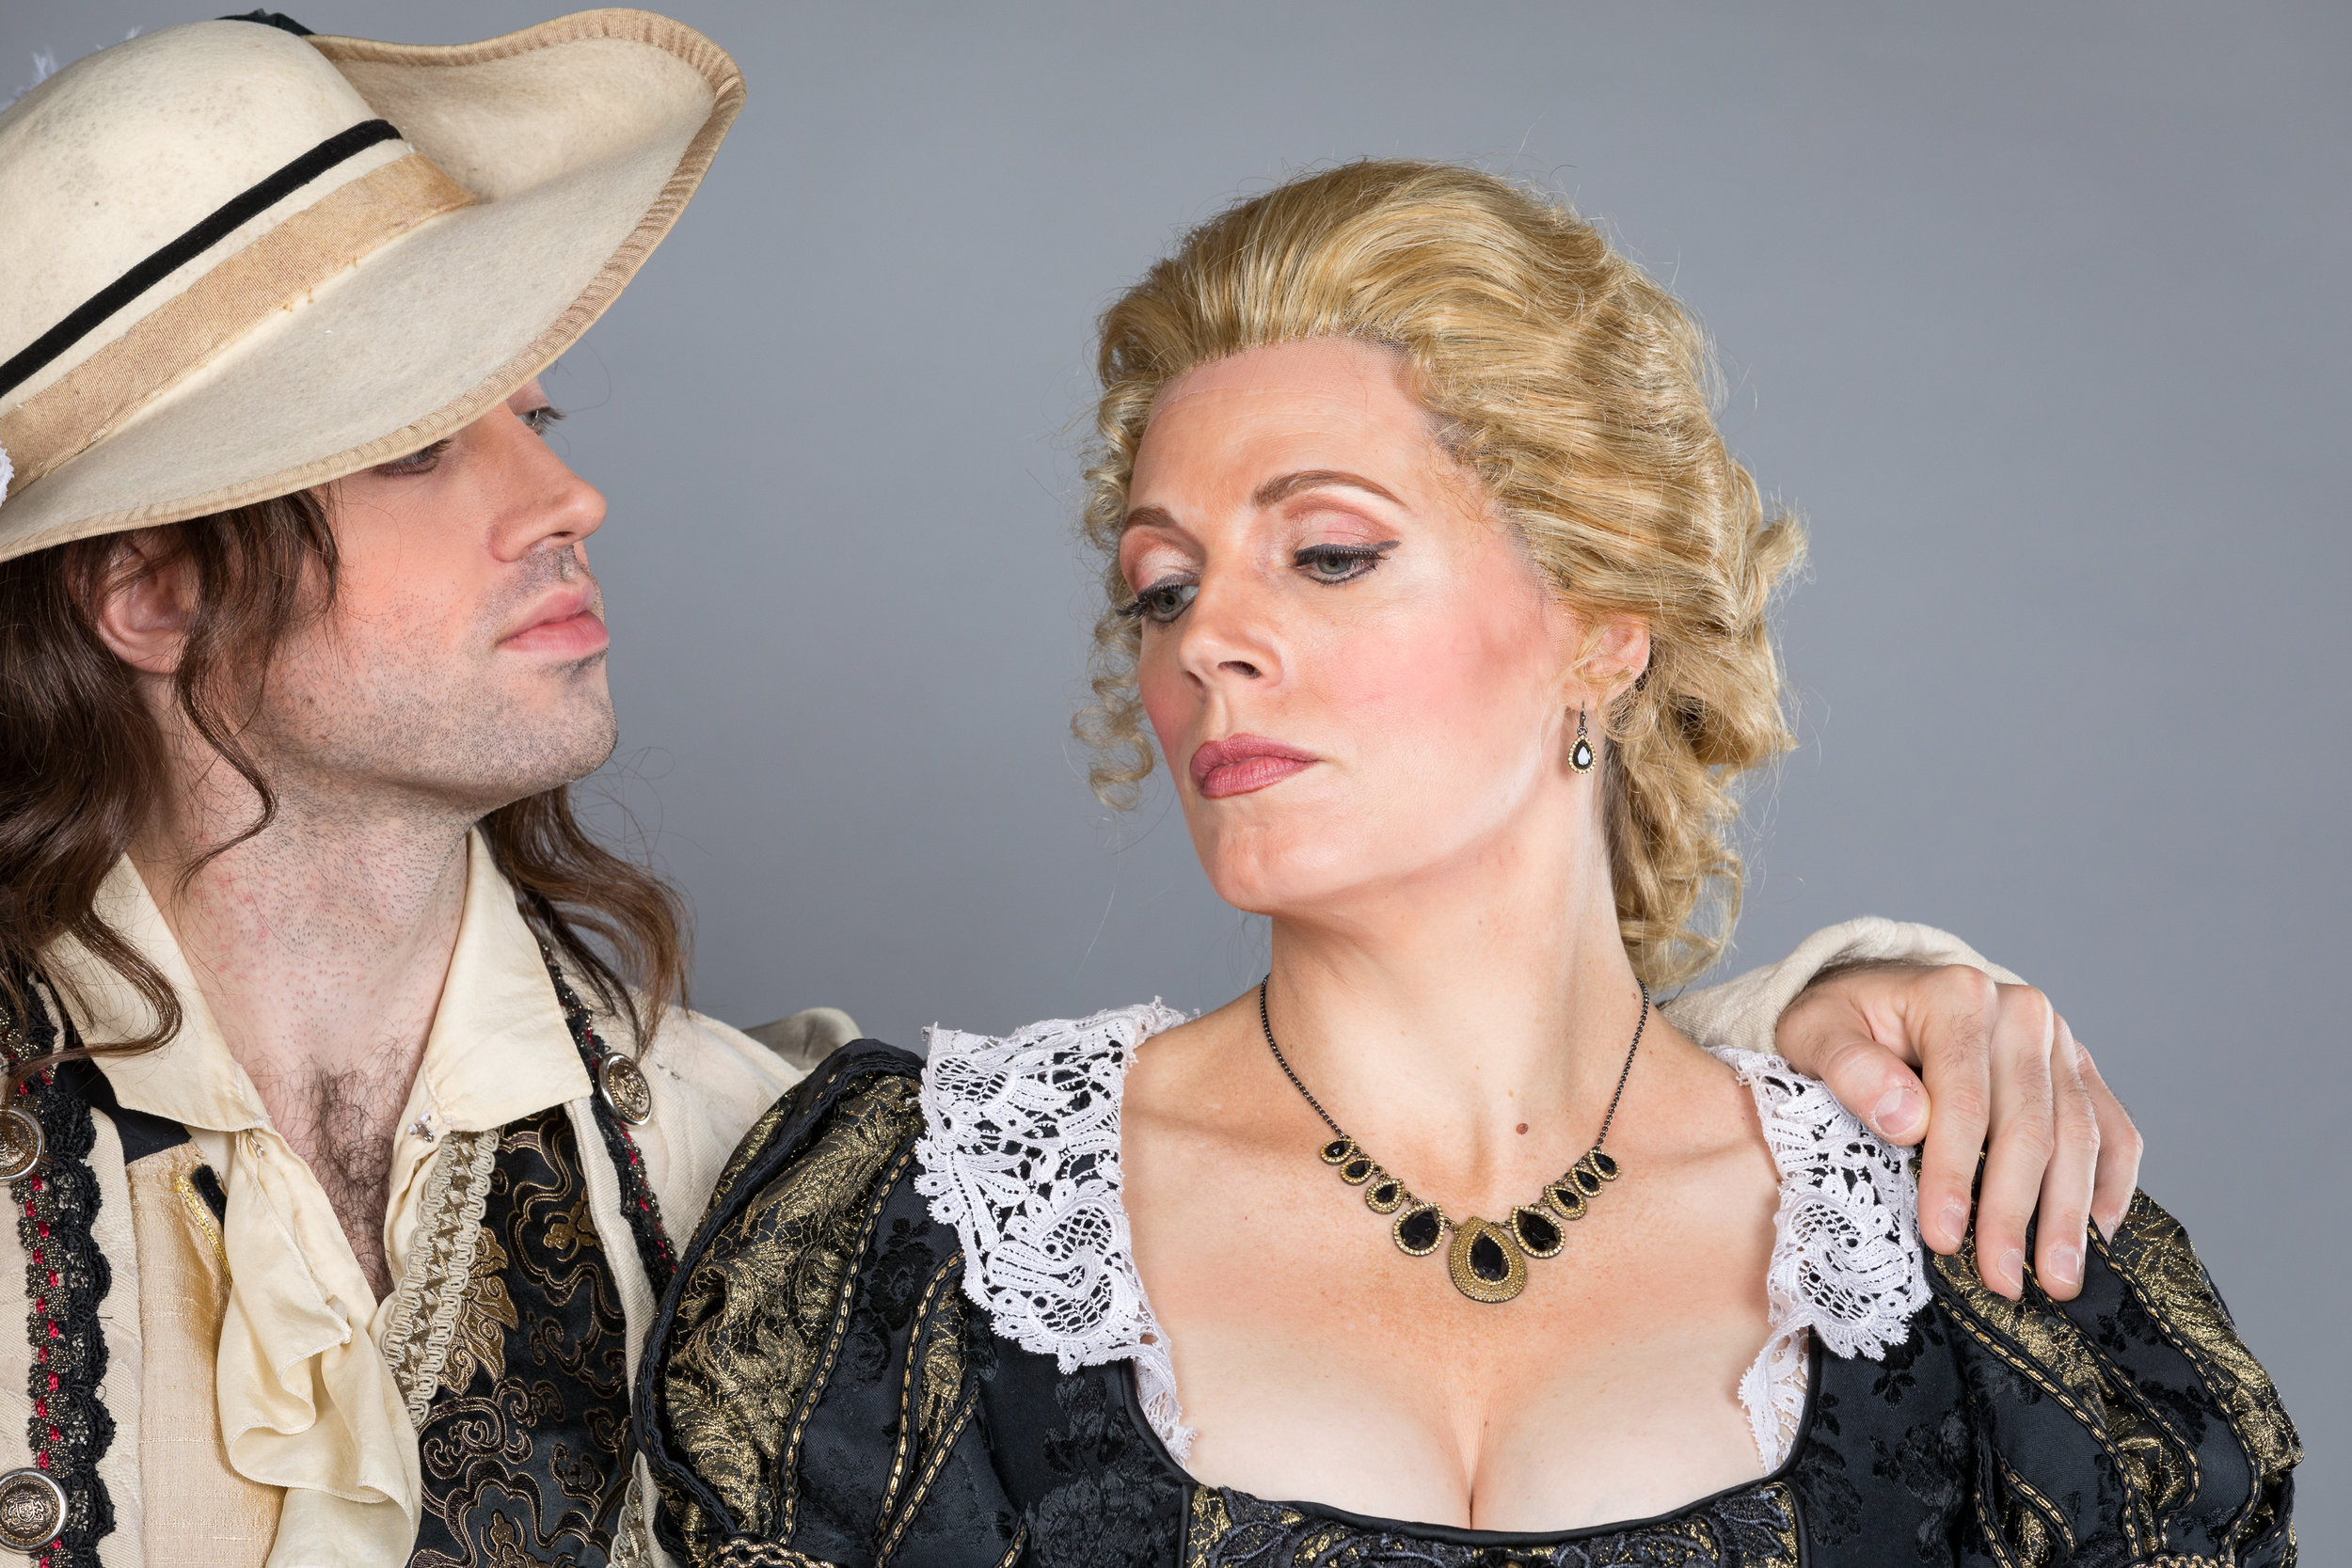 Pre-production cast photo: Tobias Greenhalgh as Don Giovanni and Rachelle Durkin as Donna Anna. Photo by Ben Schill Photography; courtesy of Virginia Opera.cast